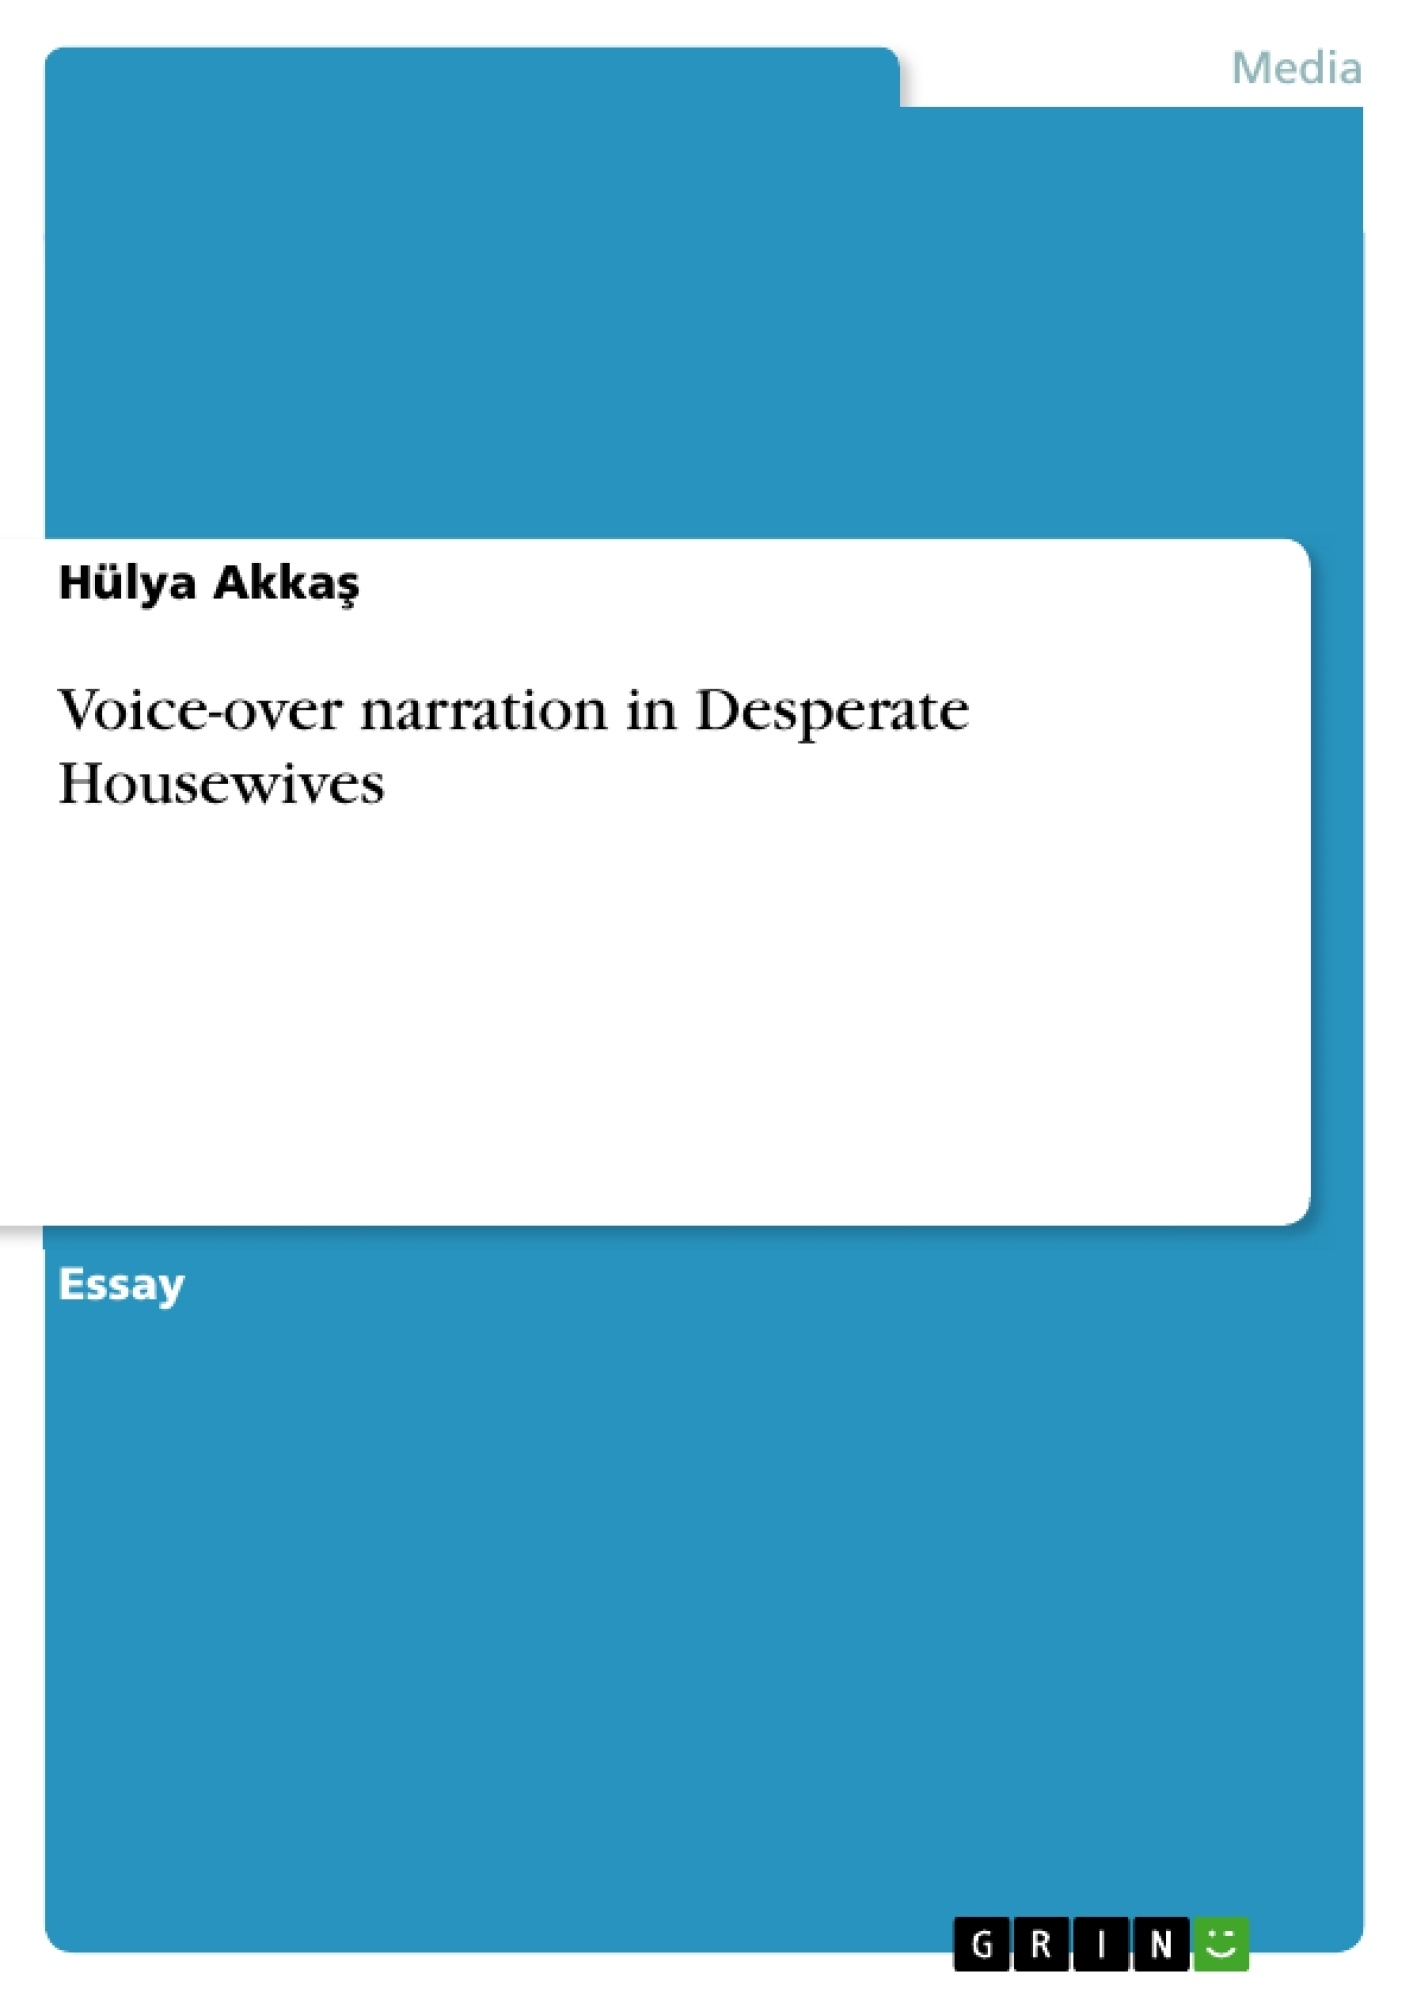 Title: Voice-over narration in Desperate Housewives